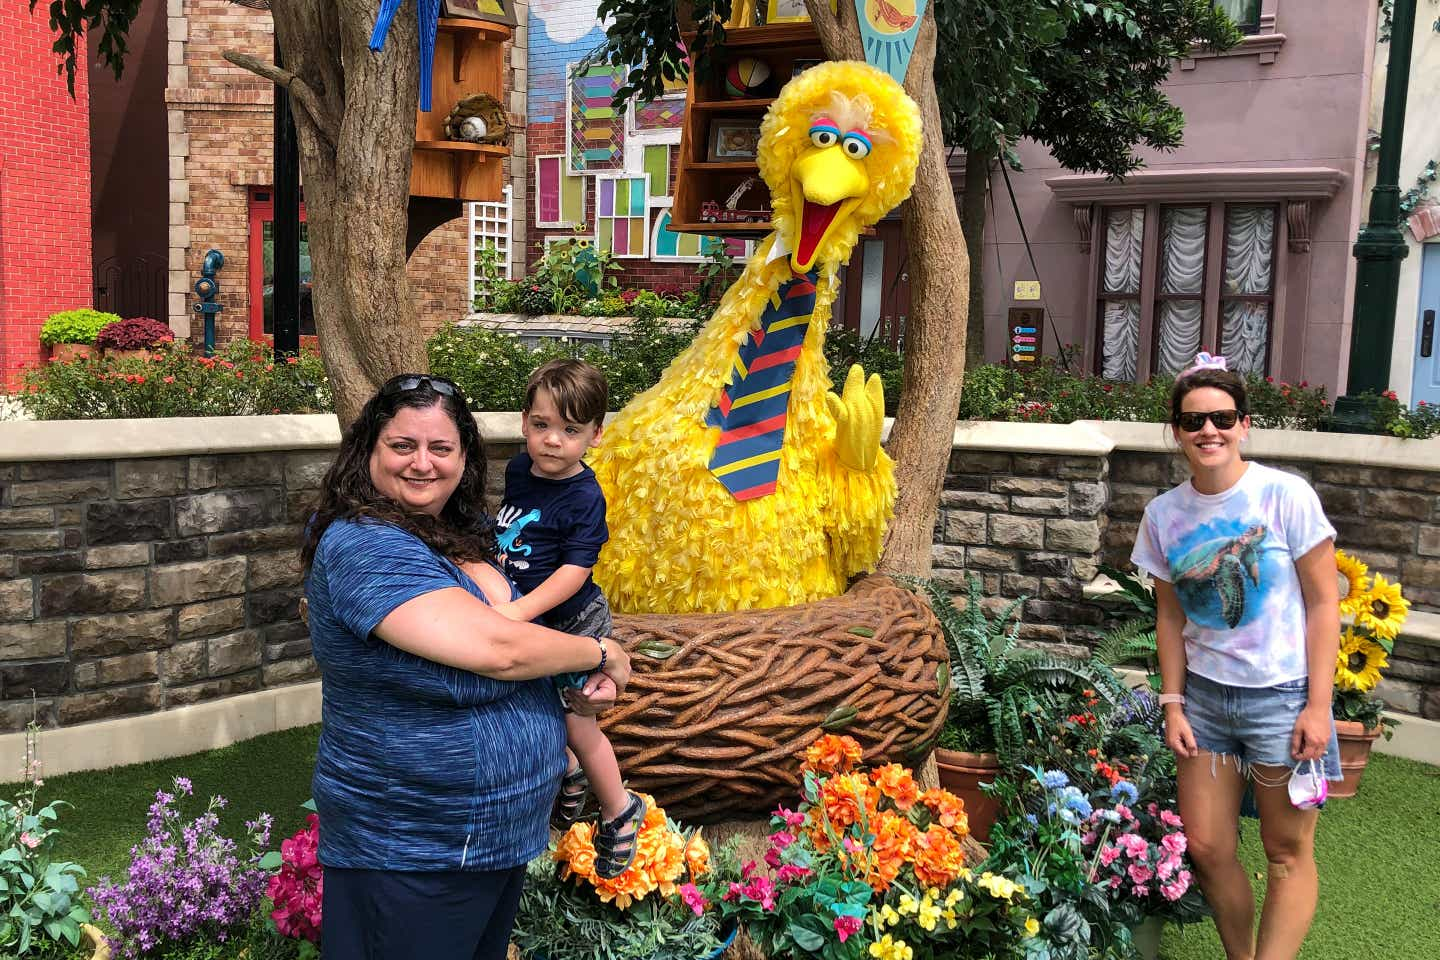 Theresa holds Dakota (left) with Jennifer (right) in front of Big Bird in his nest for a photo.